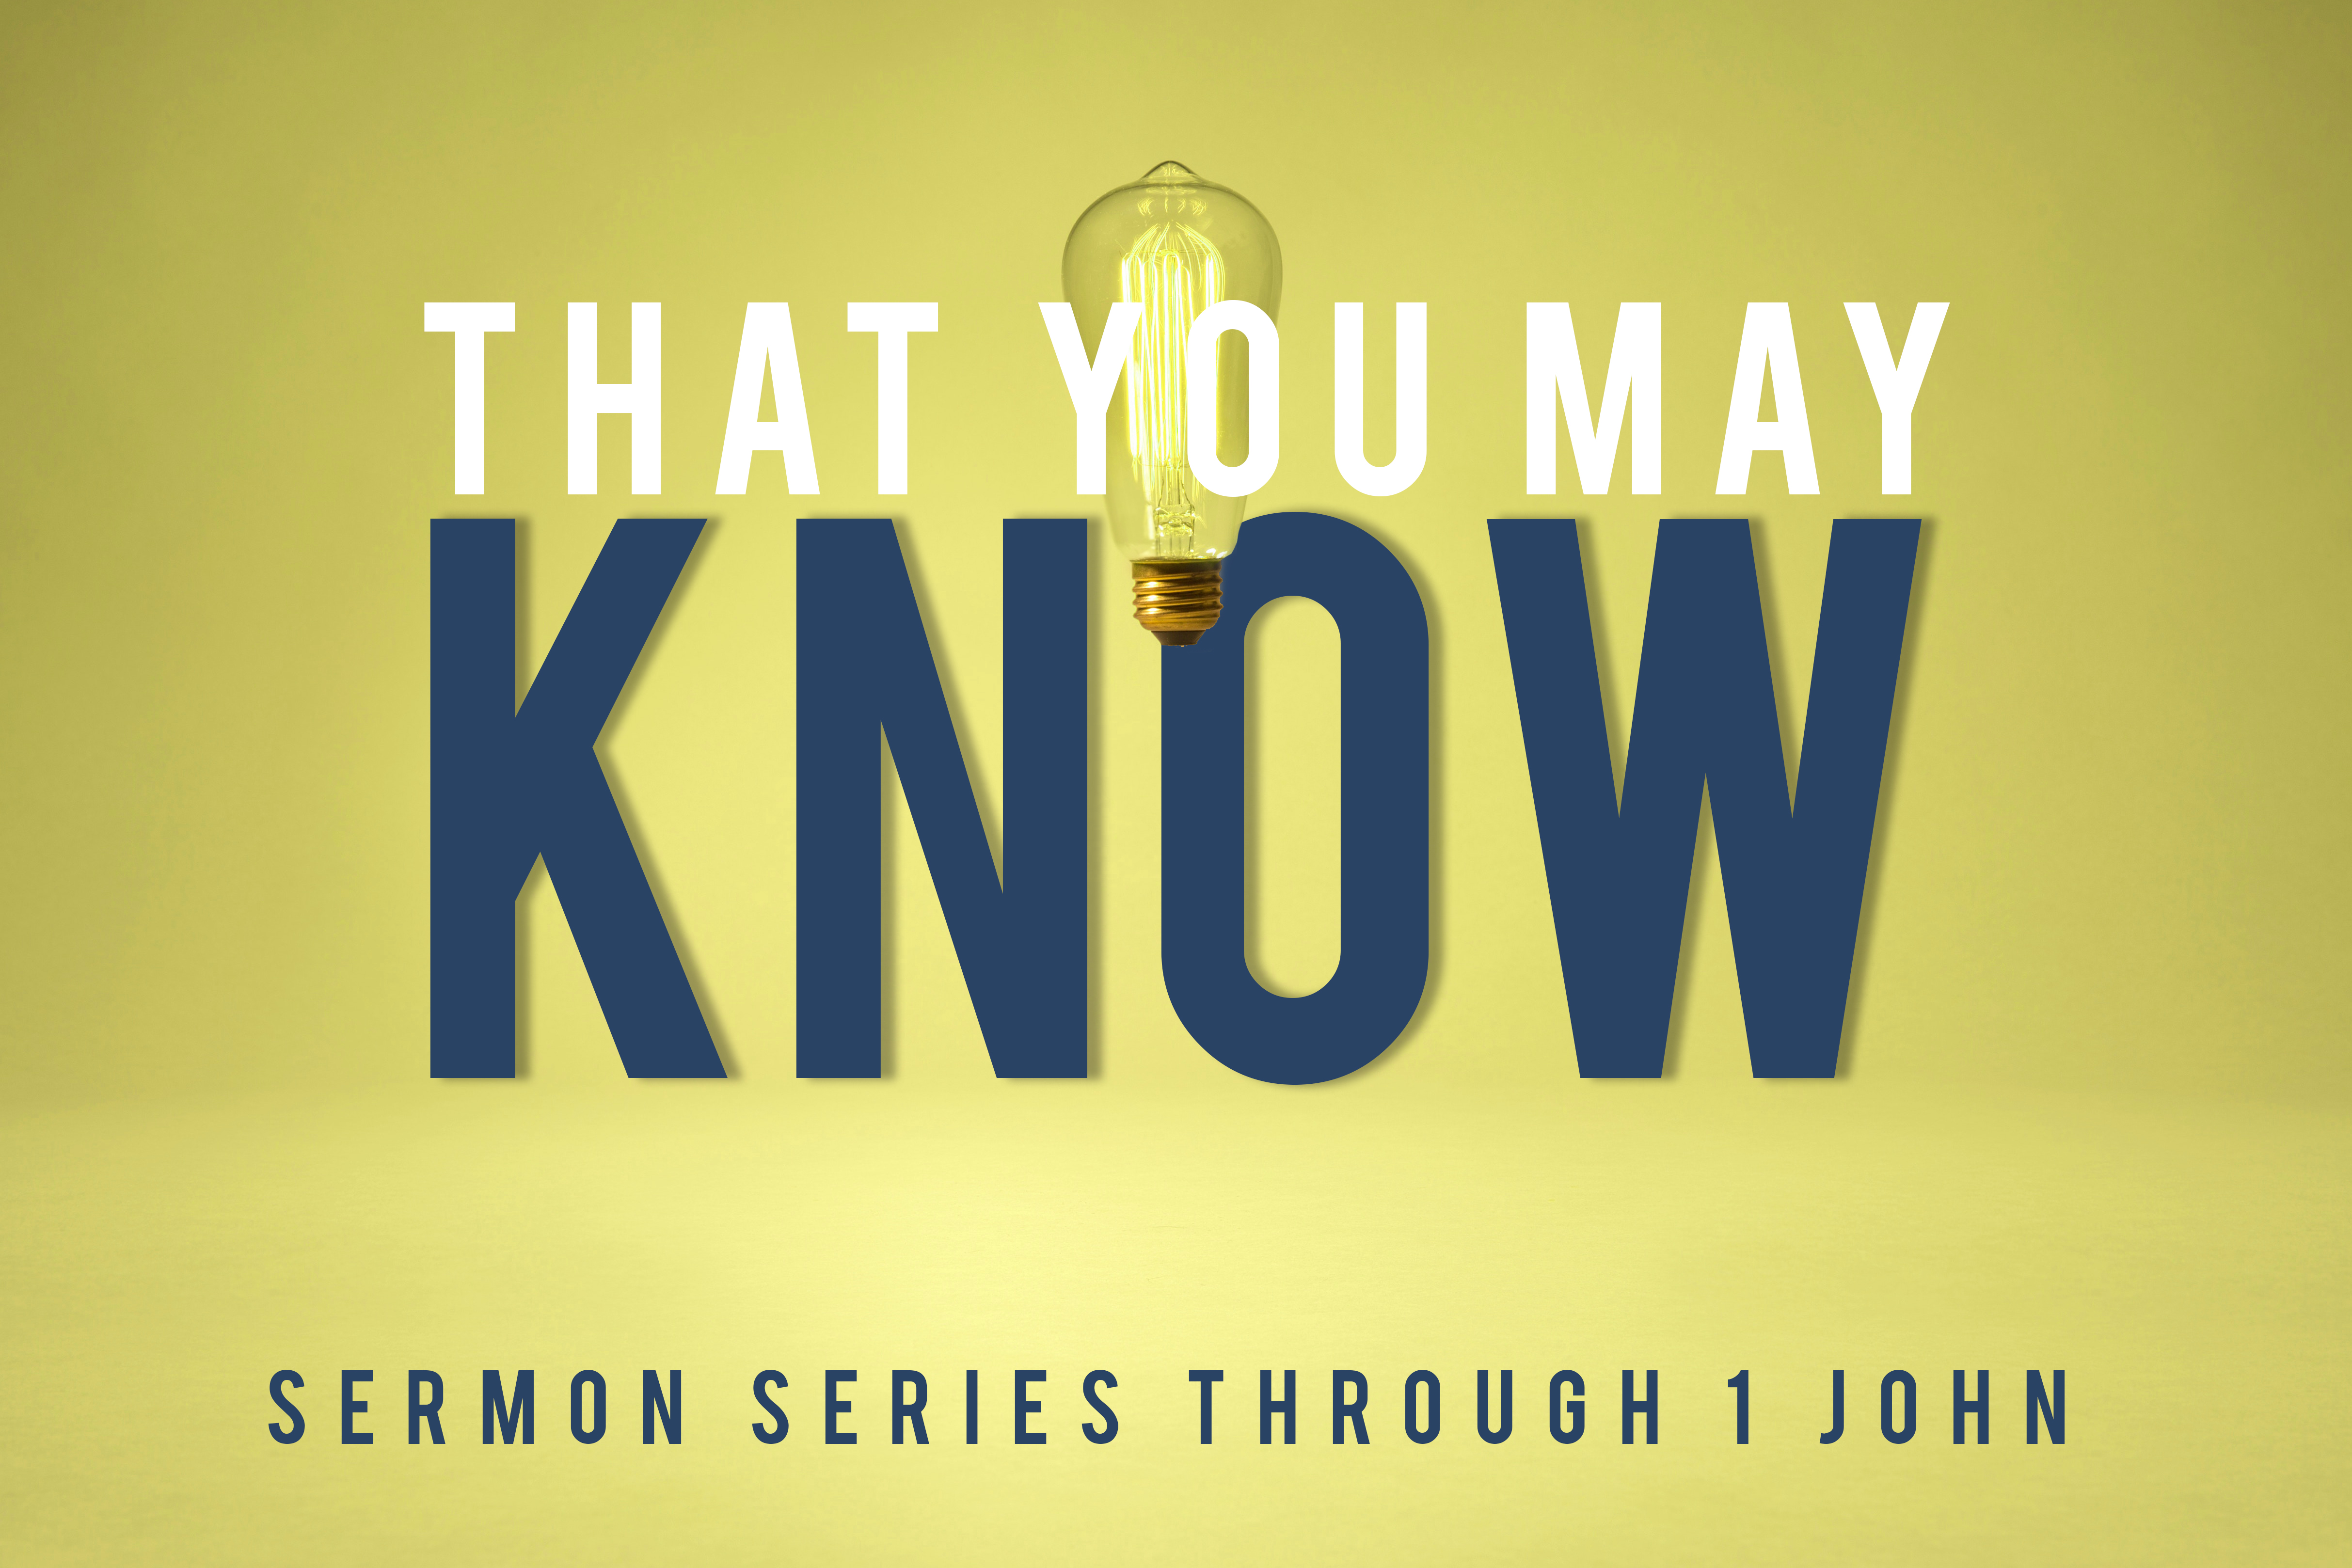 That You May Know: What To Do With Sin